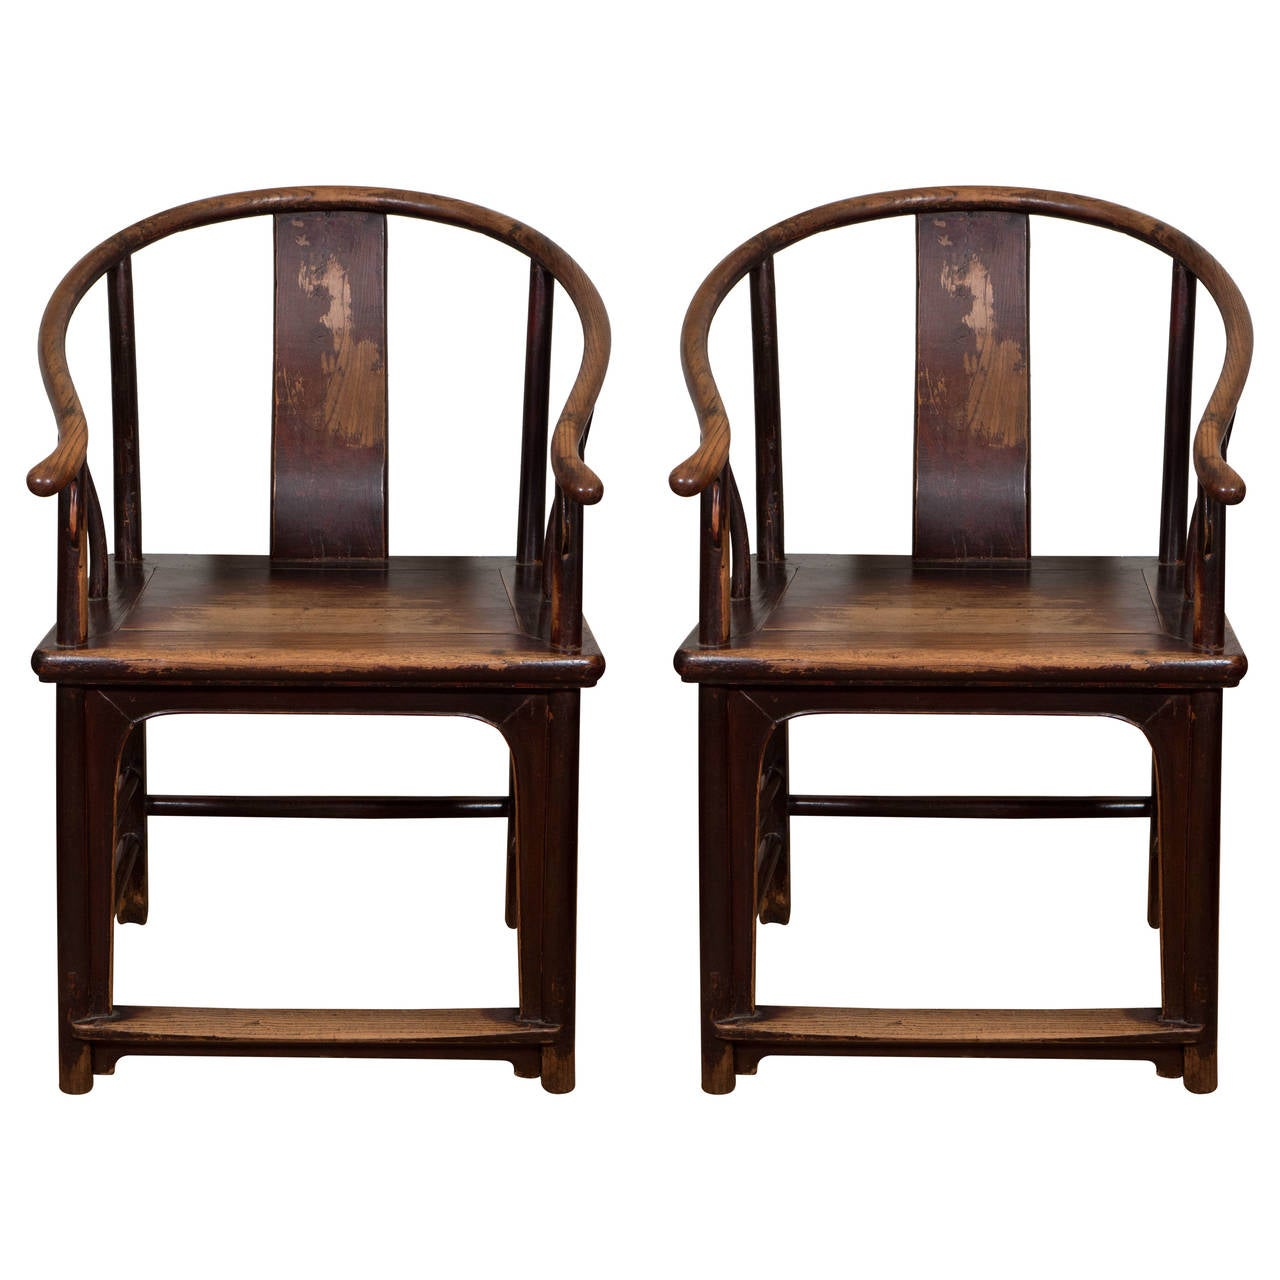 A pair of 18th century chinese horseshoe chairs at 1stdibs for Chinese art furniture